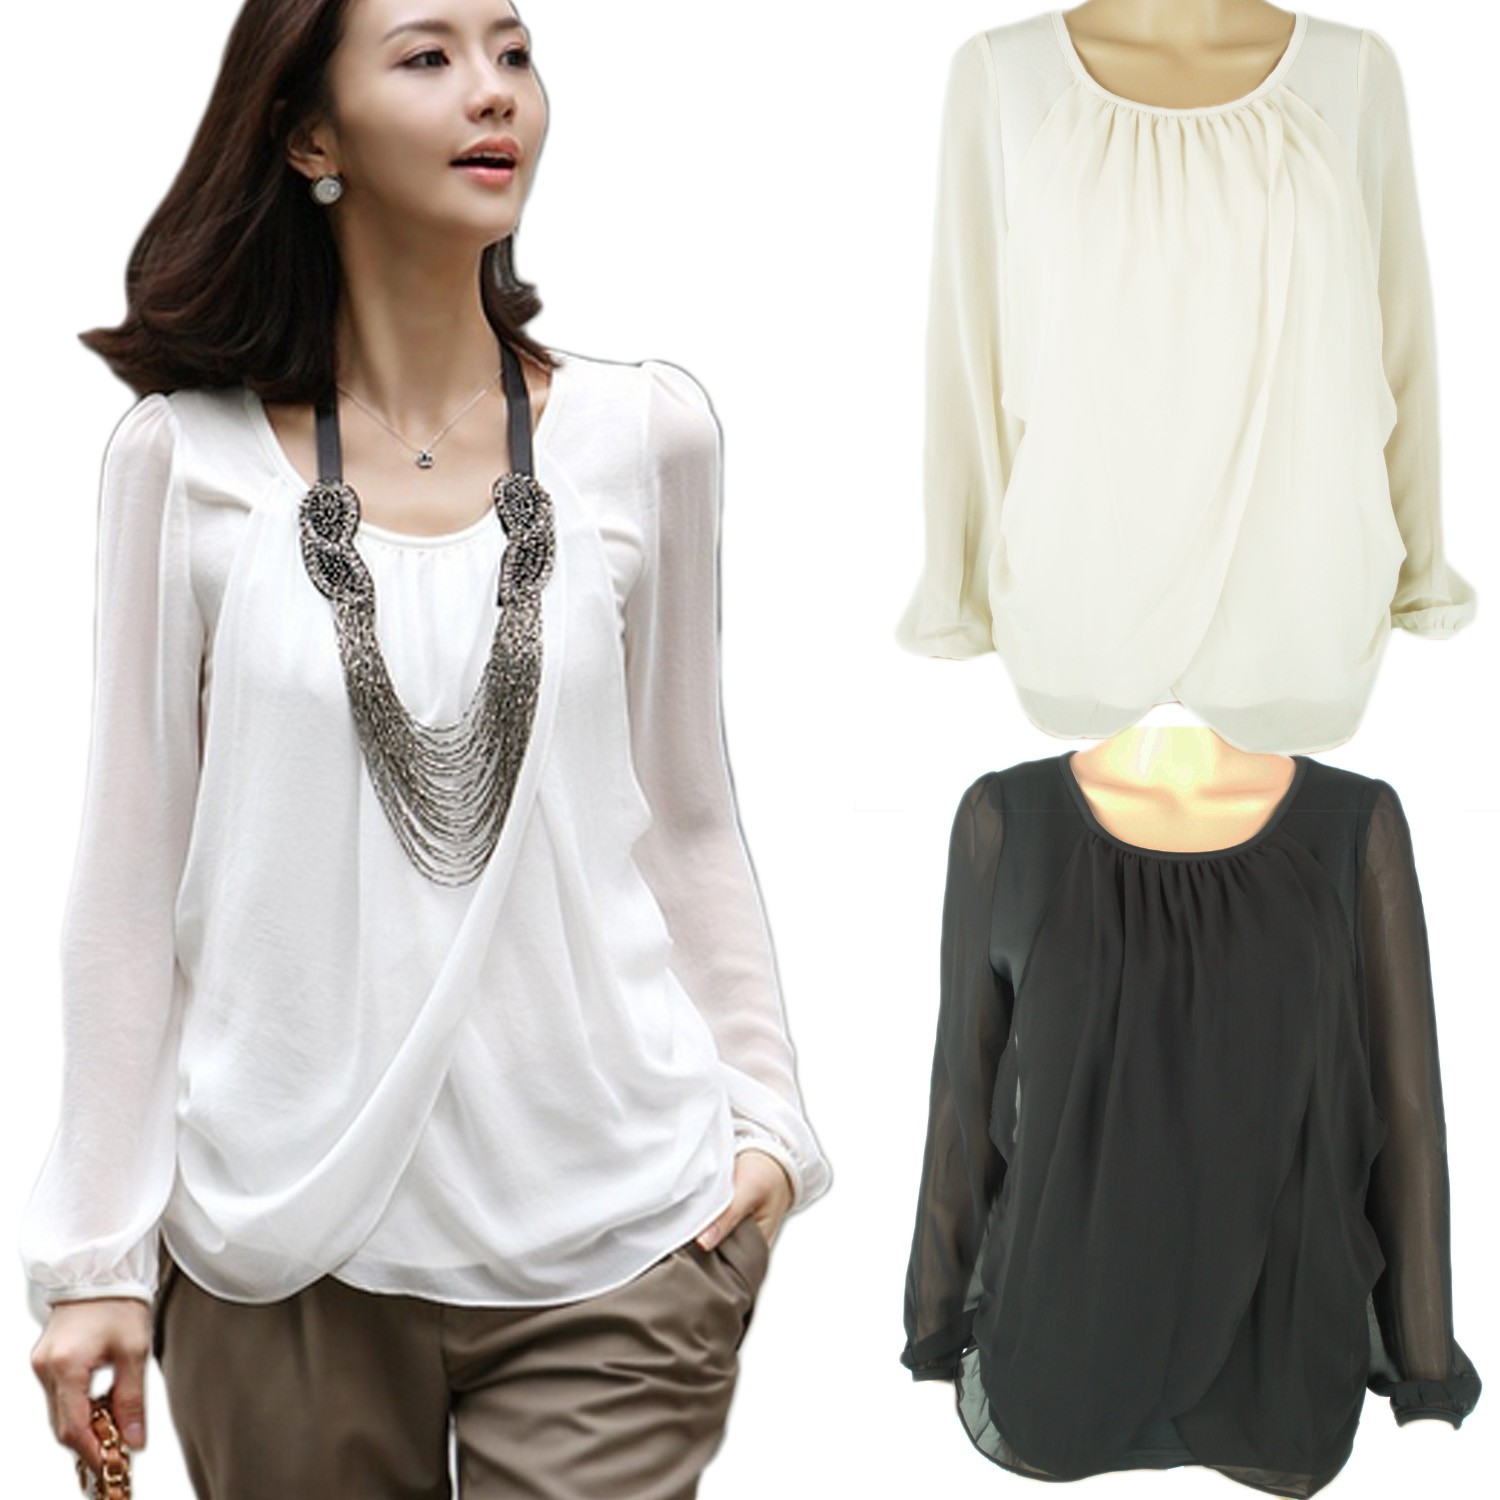 Slouch Simple Long Sleeve Chiffon Sheer Top Blouse AU 6 8 10 Womens Ladies